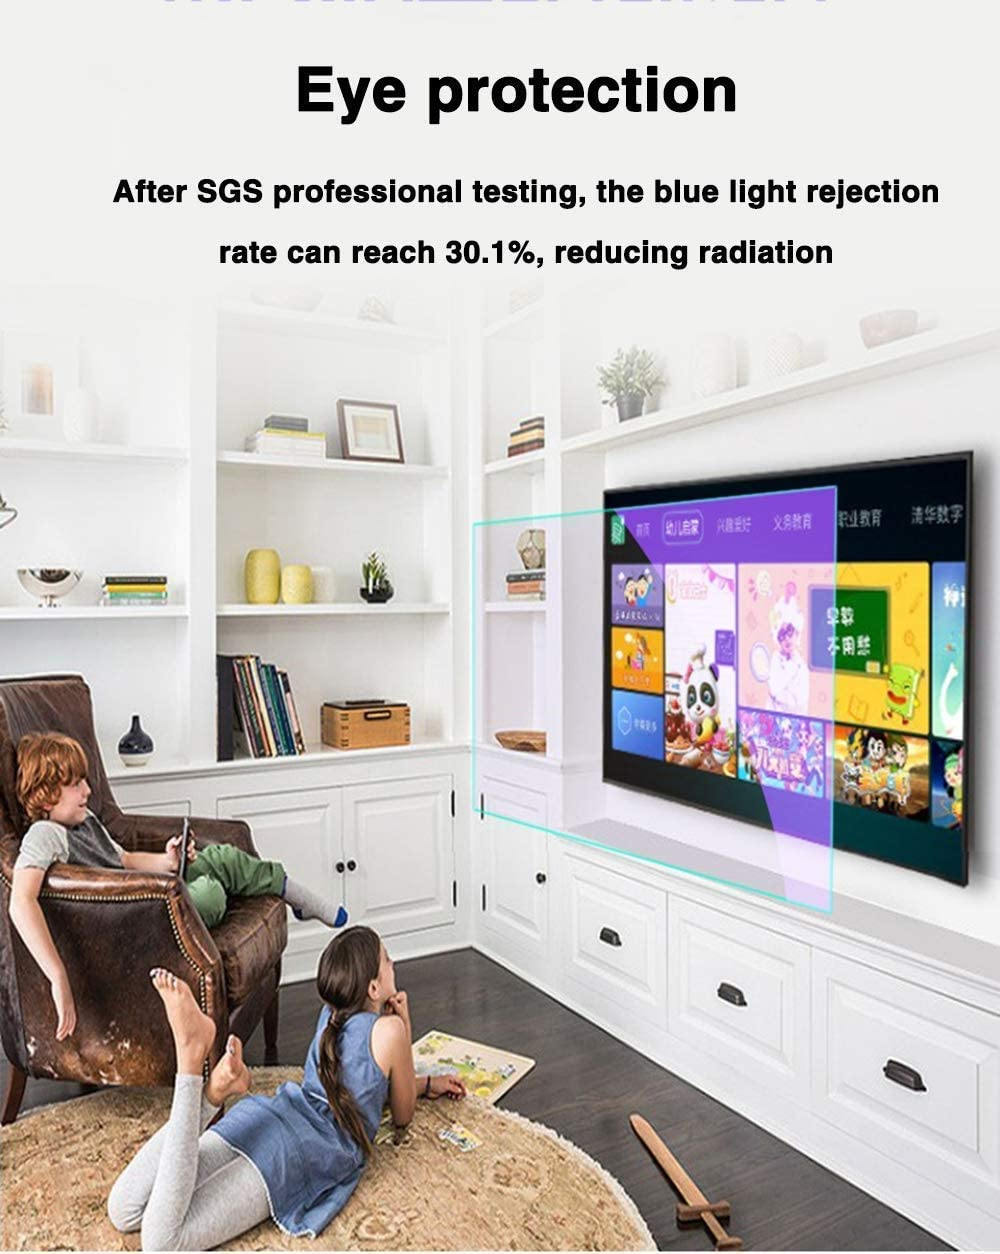 LED CUUYQ TV Screen Protector OLED /& QLED 4K HDTV,A 60 Inches Anti-Blue Light Ultra-Clear Protector Film Non-Glare Anti-Scratch Eye Protection for LCD